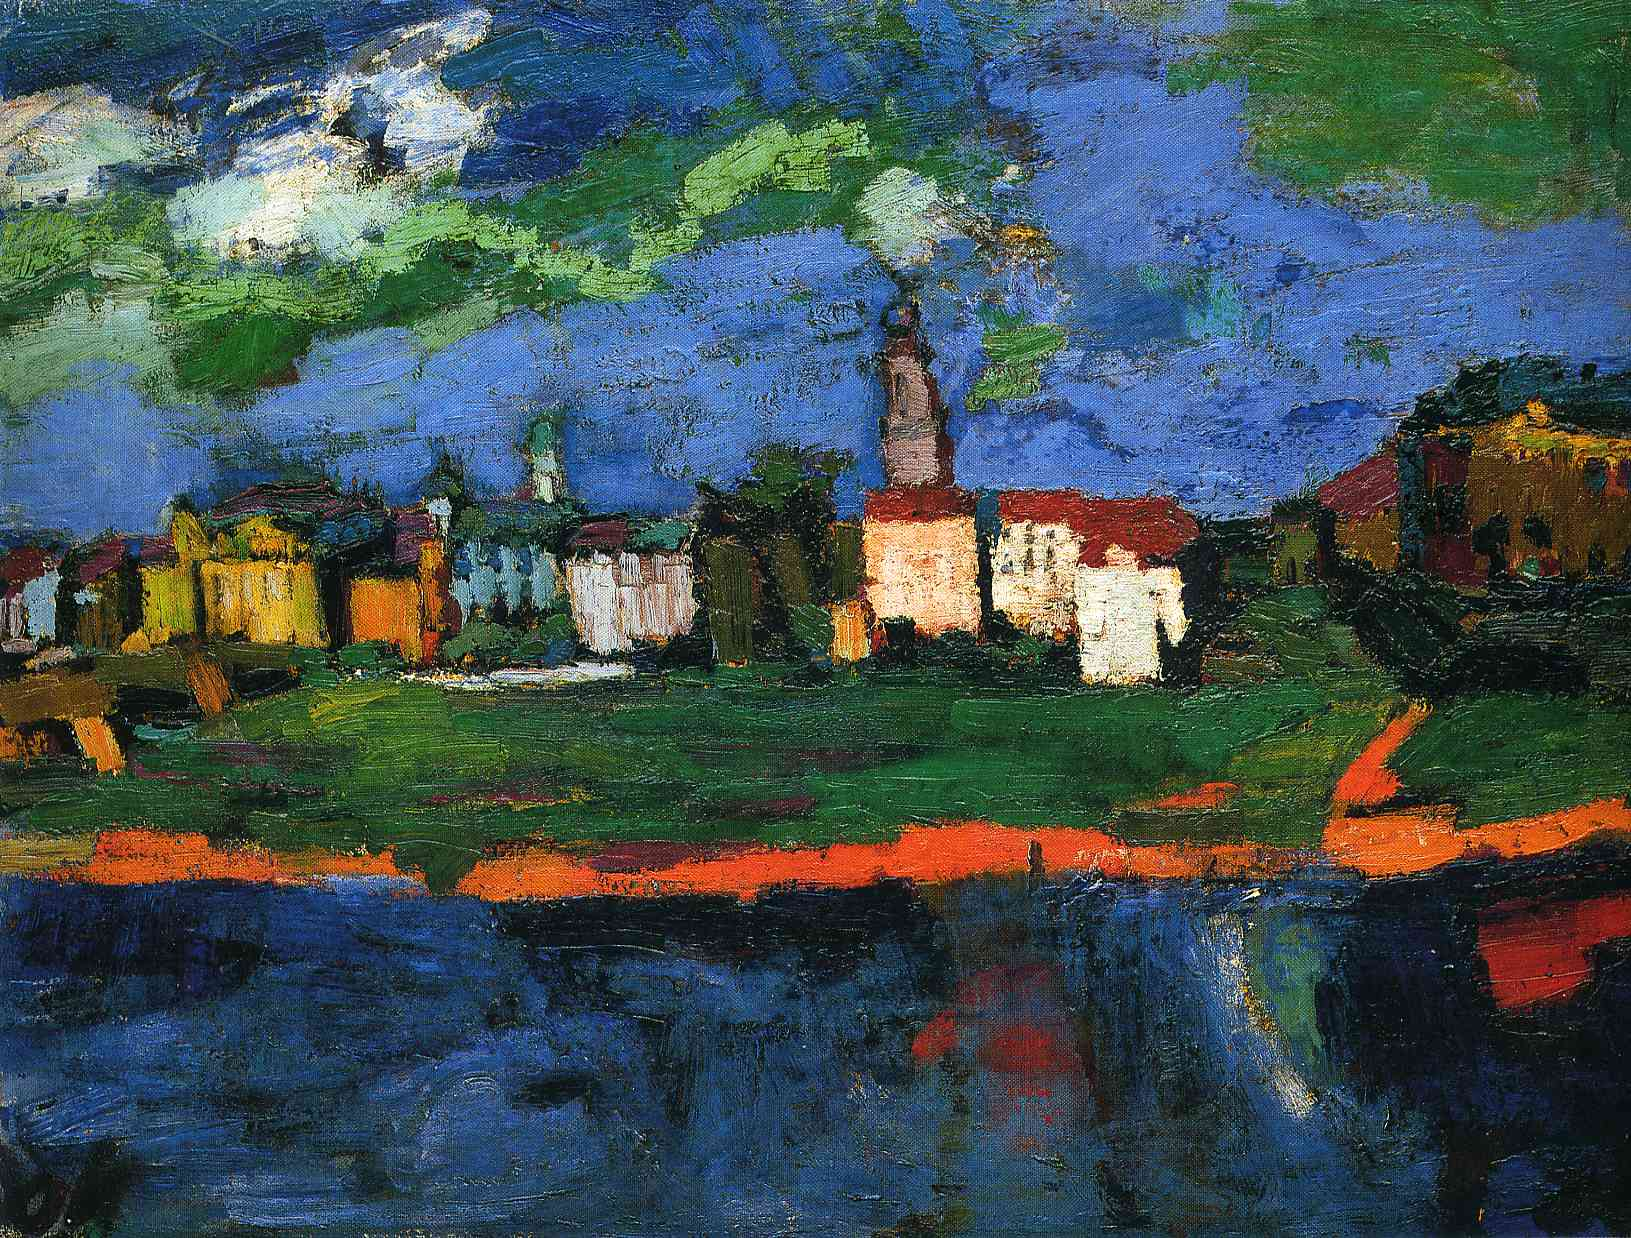 German Expressionisst painter Oscar Kokoschka The Elbe near Dresden